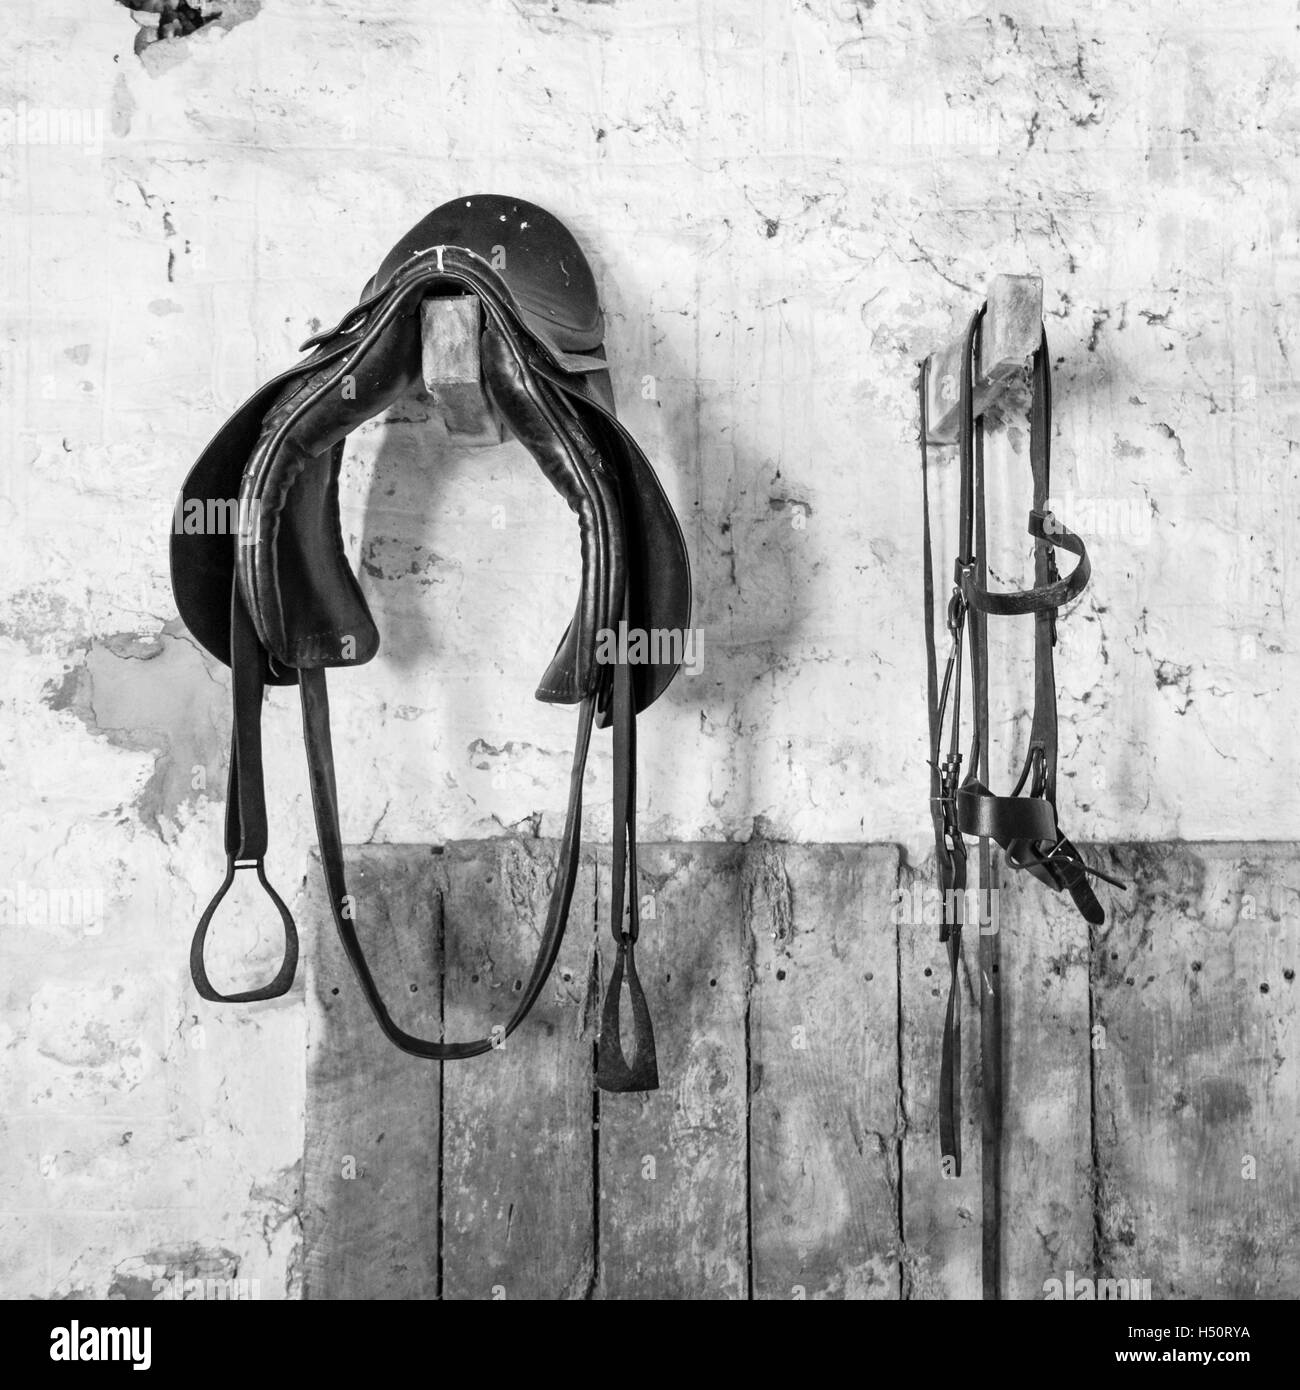 Old saddle and bridle hanging in a stable - Stock Image